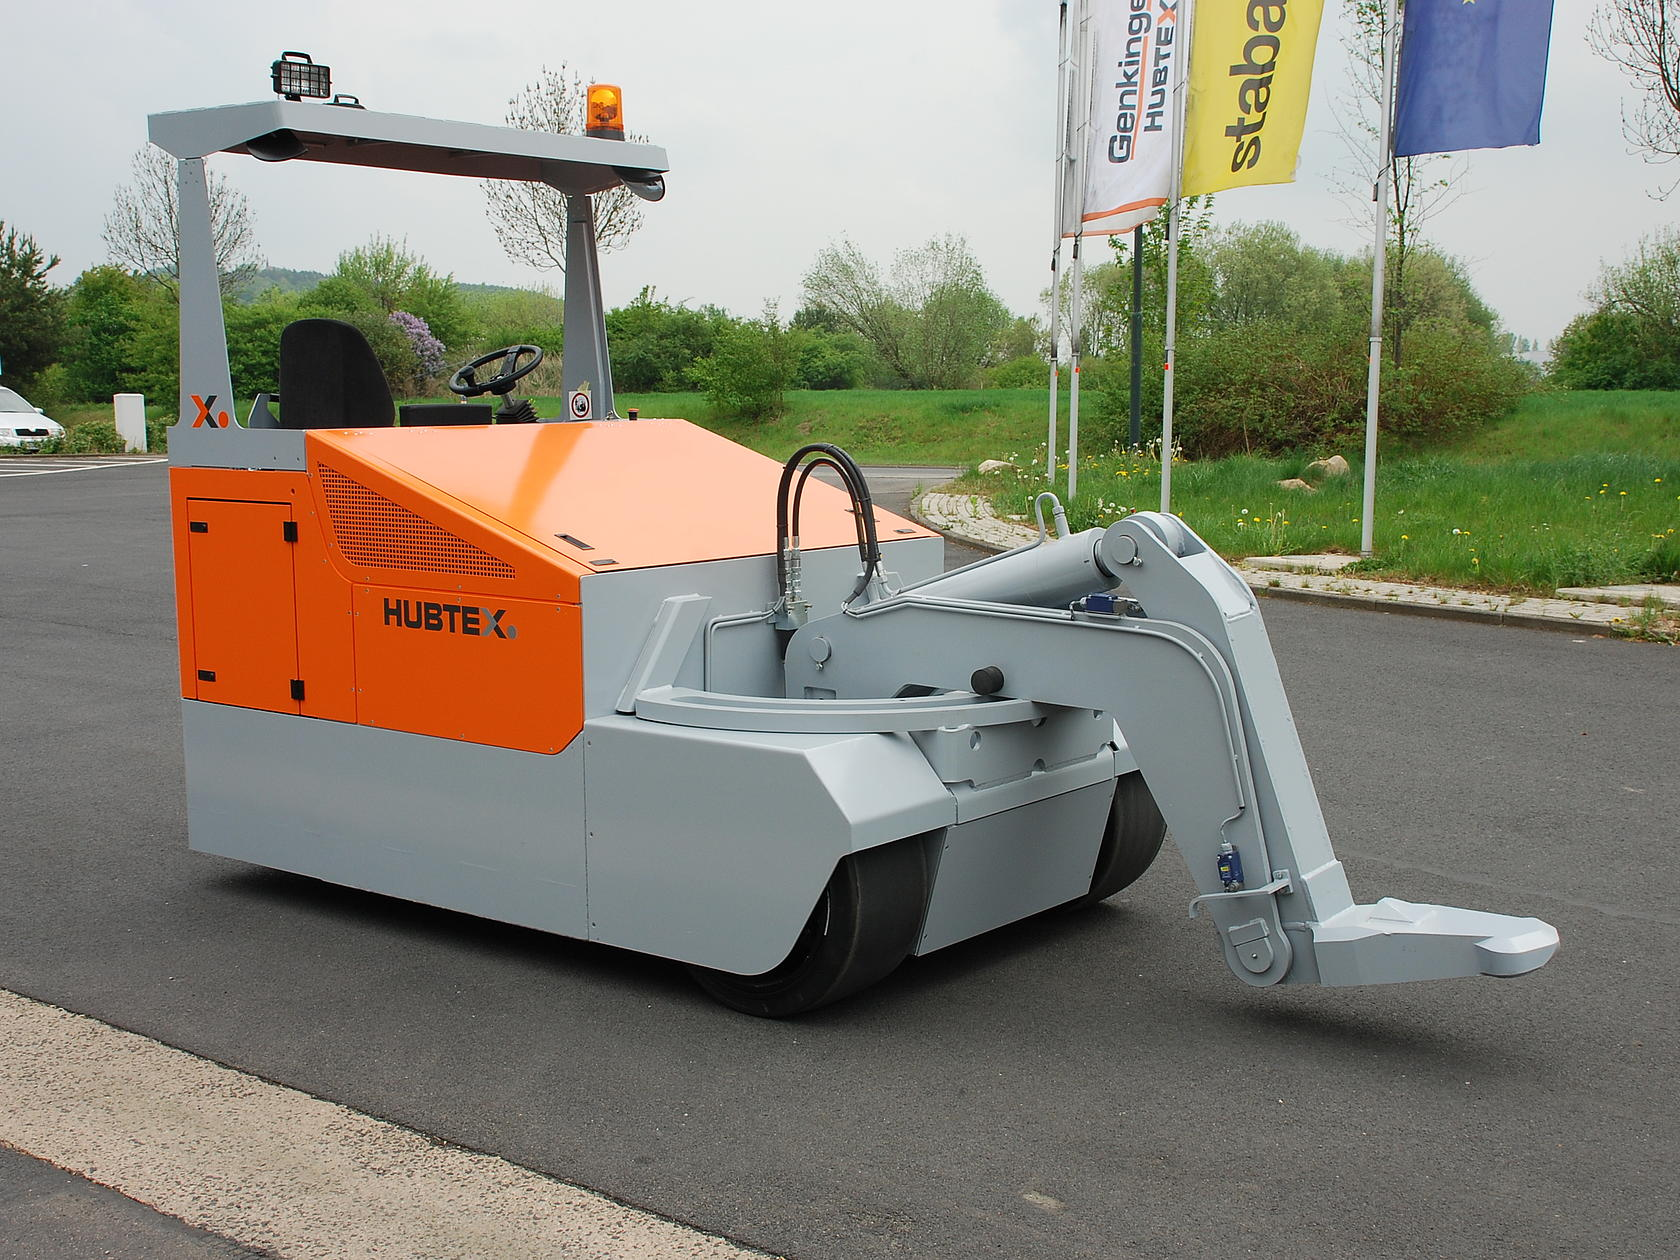 Electric towing tractor in the sheet metal industry